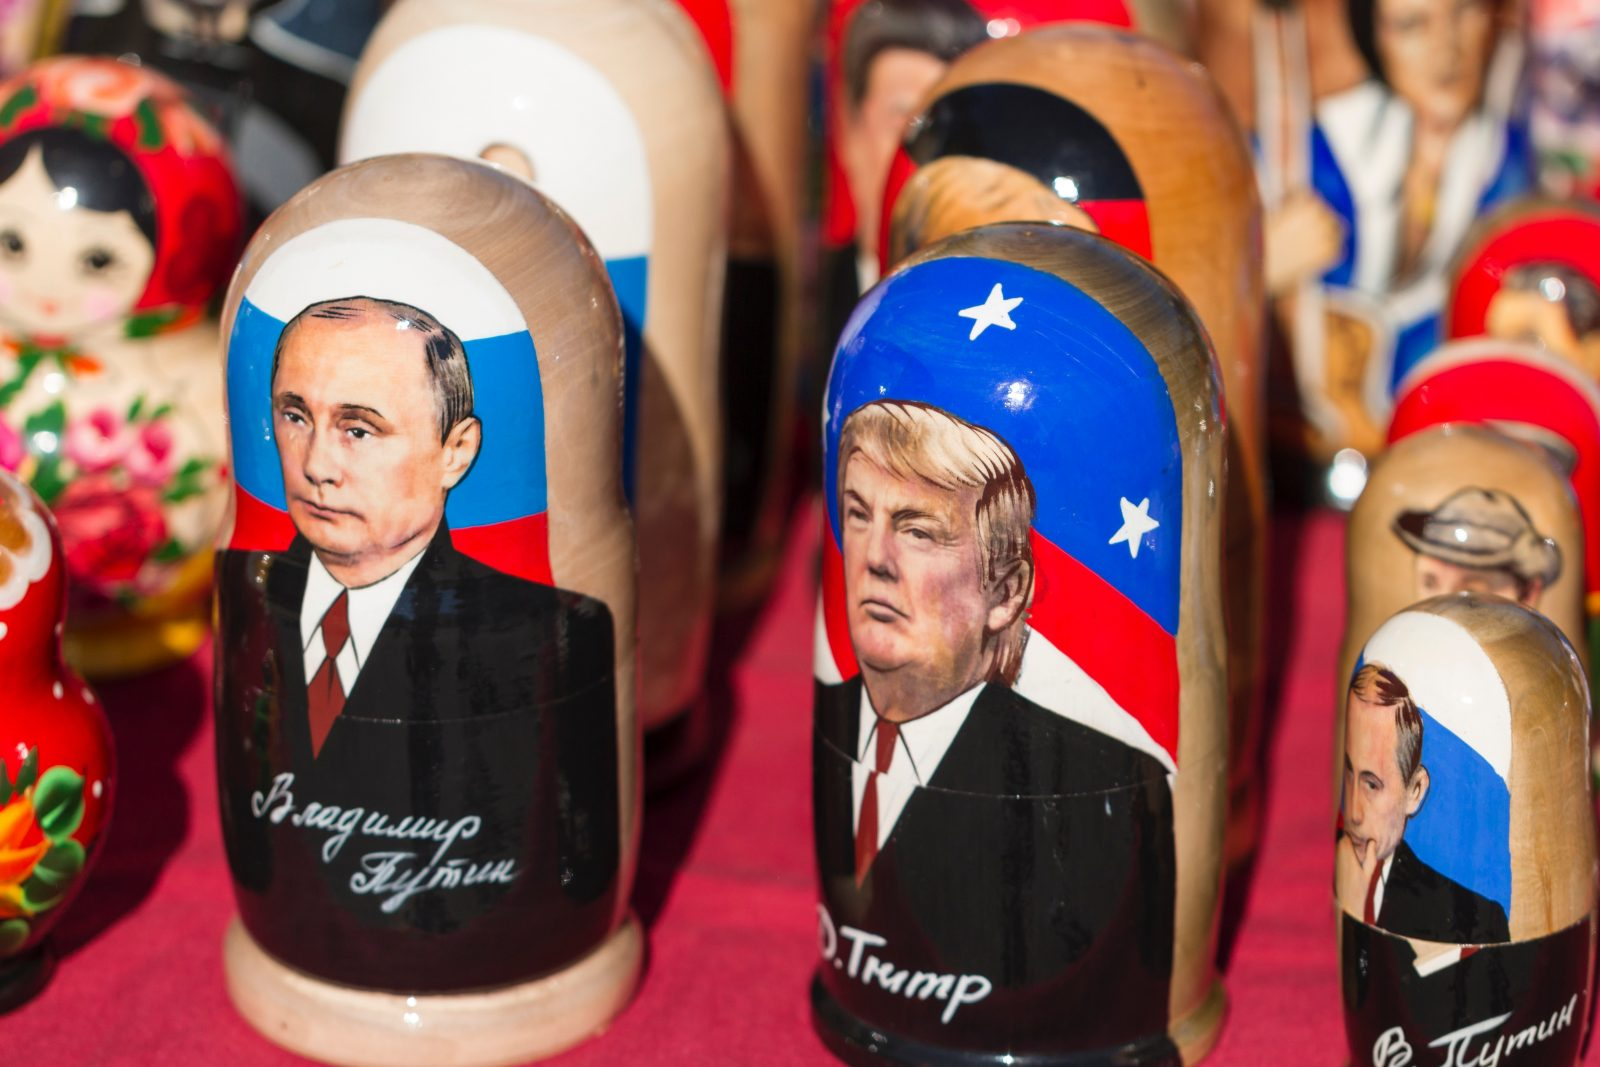 A USRESIST NEWS SPECIAL REPORT; Trump's League of Tyrants: A Guide to Authoritarian Leaders Around the World